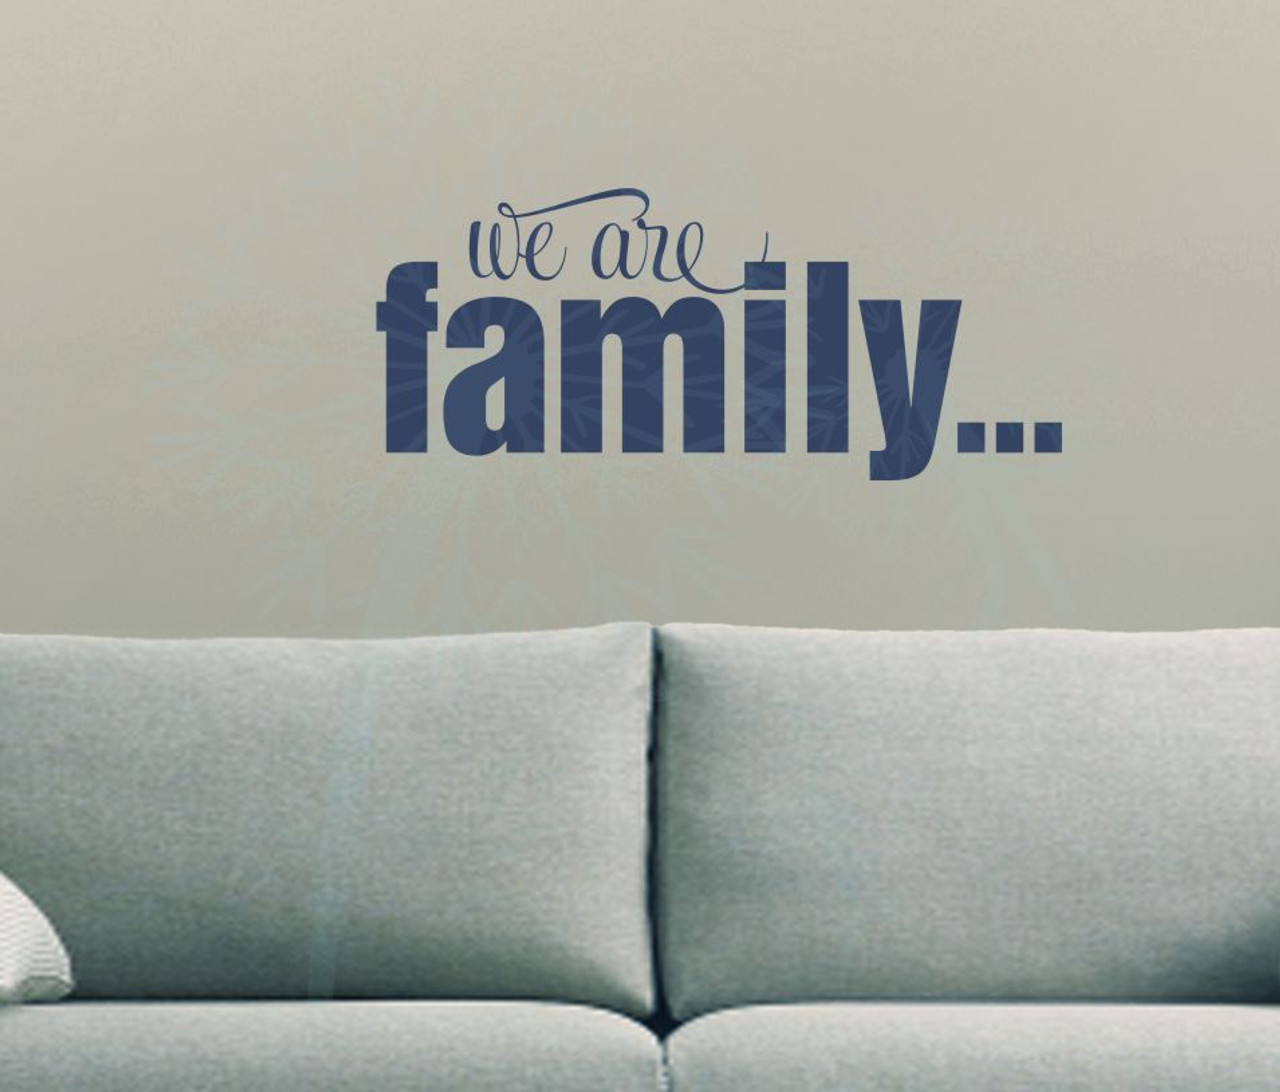 & We are Family Wall Décor Lettering Wall Decal Sticker Quotes